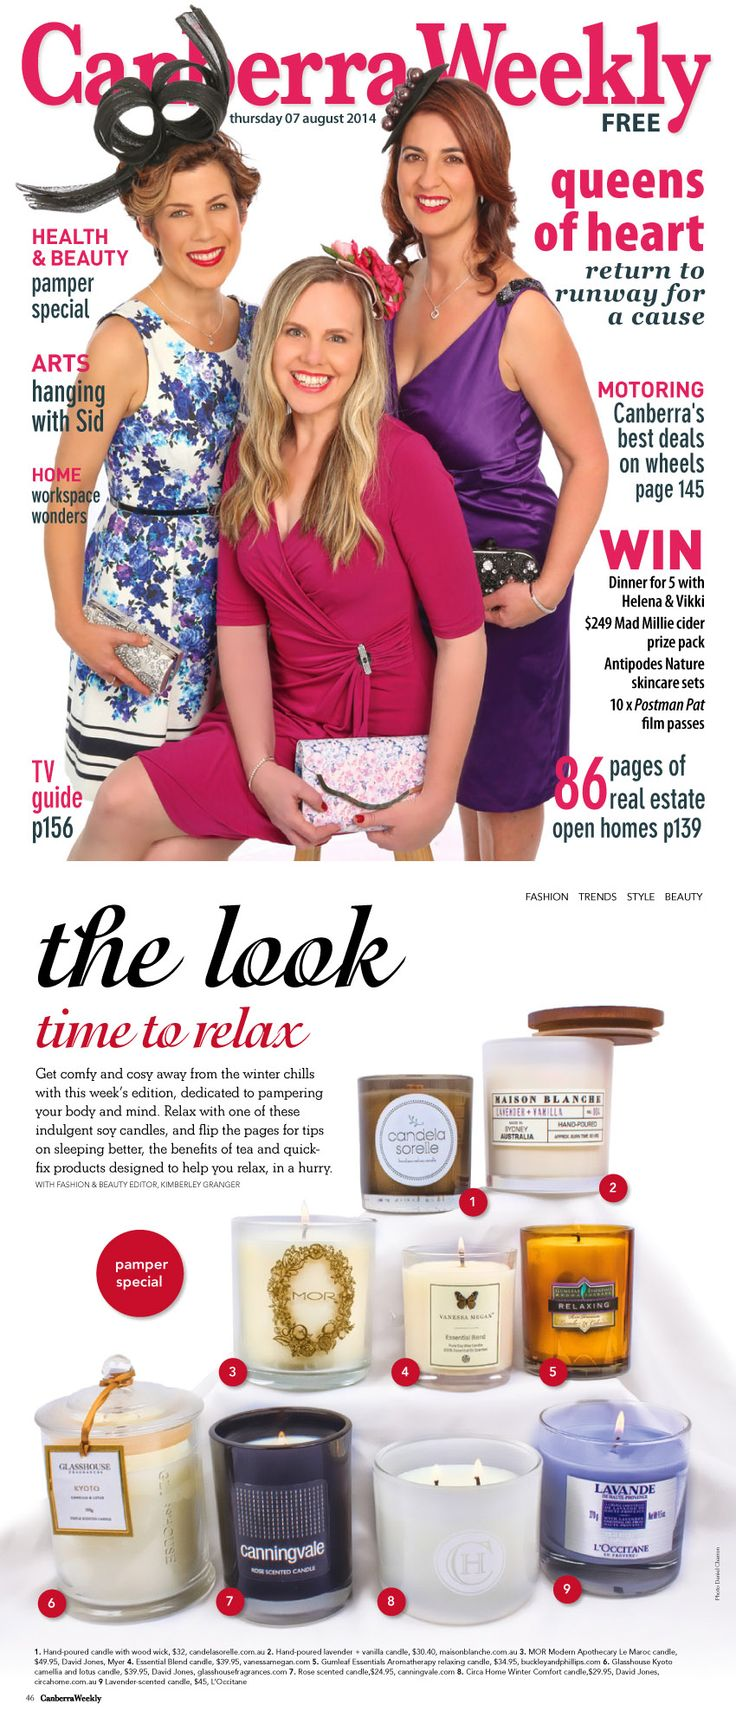 Gumleaf Essentials Relaxing Candle feature - Canberra Weekly Magazine, Aug 2014